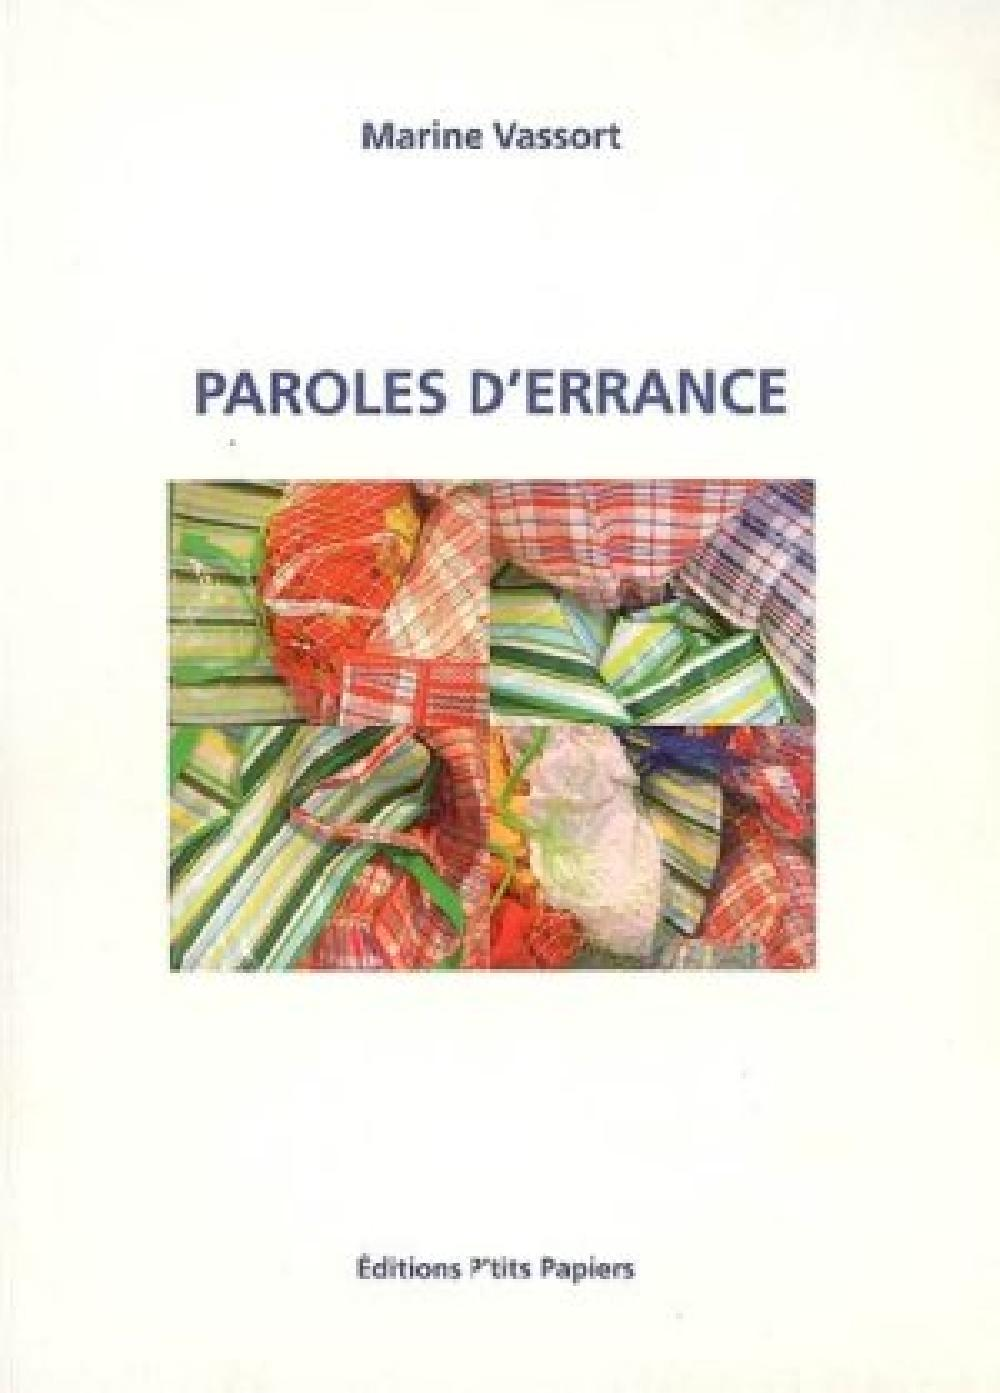 Paroles d'errance